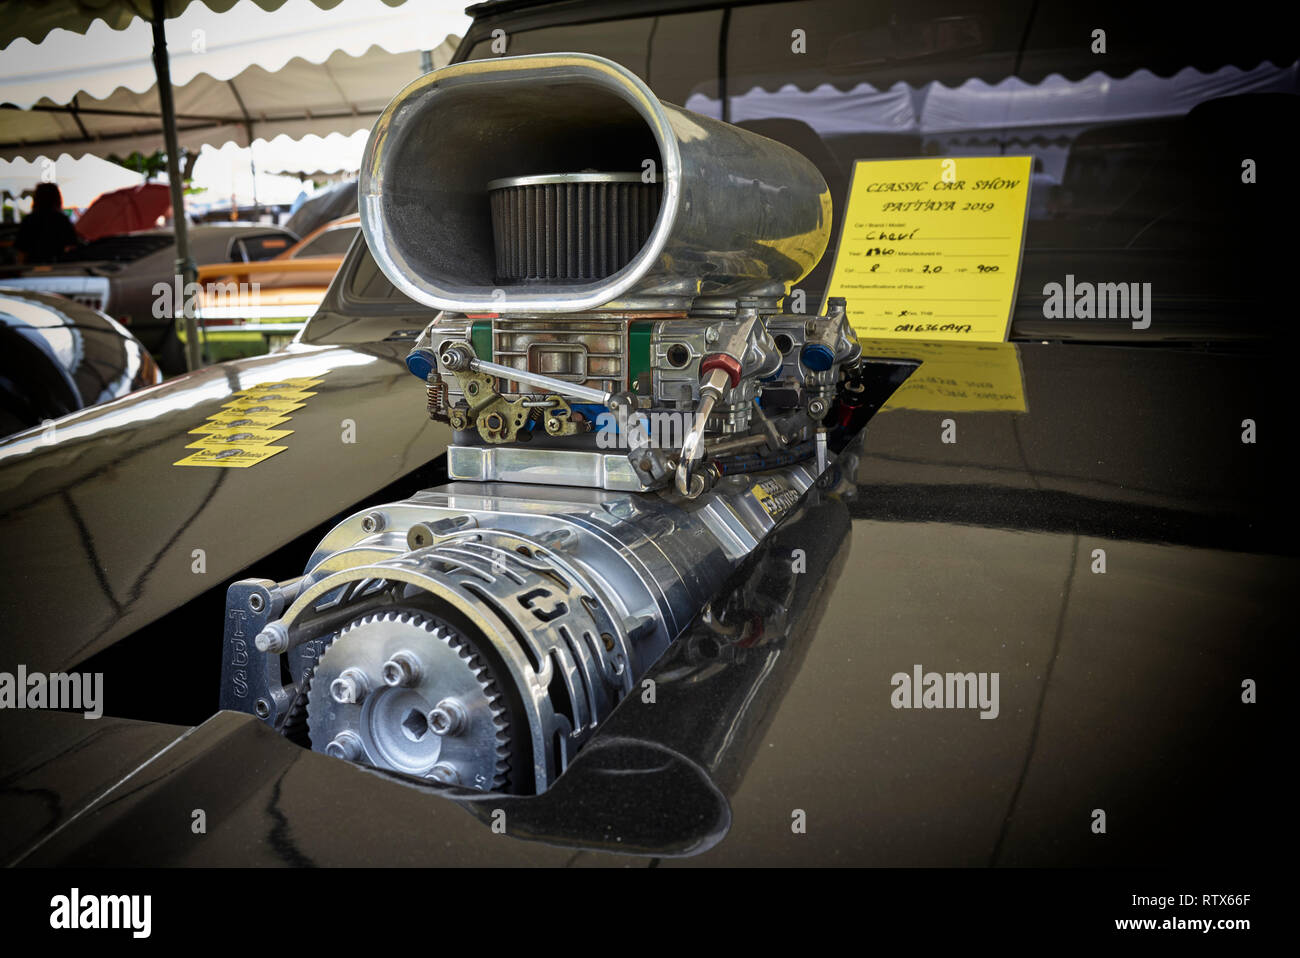 Supercharged Engine Stock Photos & Supercharged Engine Stock Images